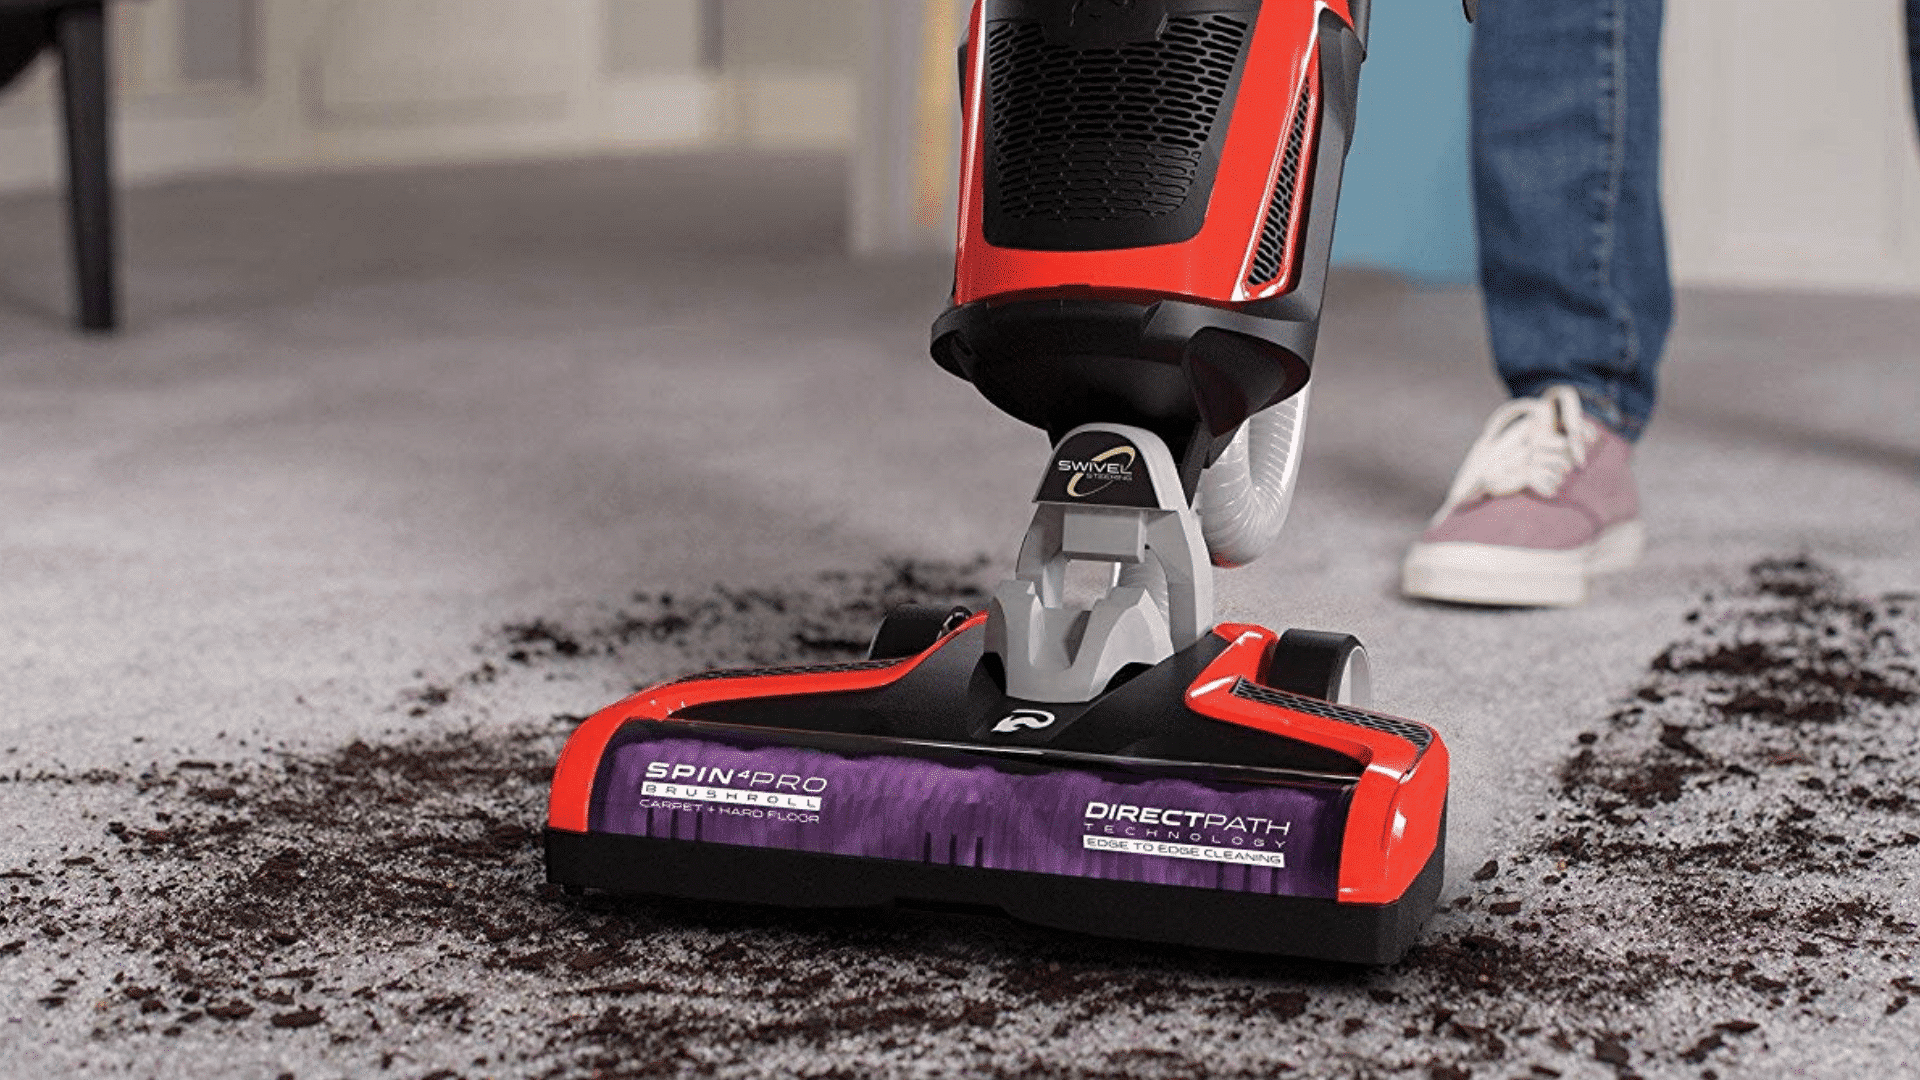 product image of Dirt Devil Razor Pet Bagless Multi Floor Corded Upright Vacuum Cleaner with Swivel Steering being used to clean carpet